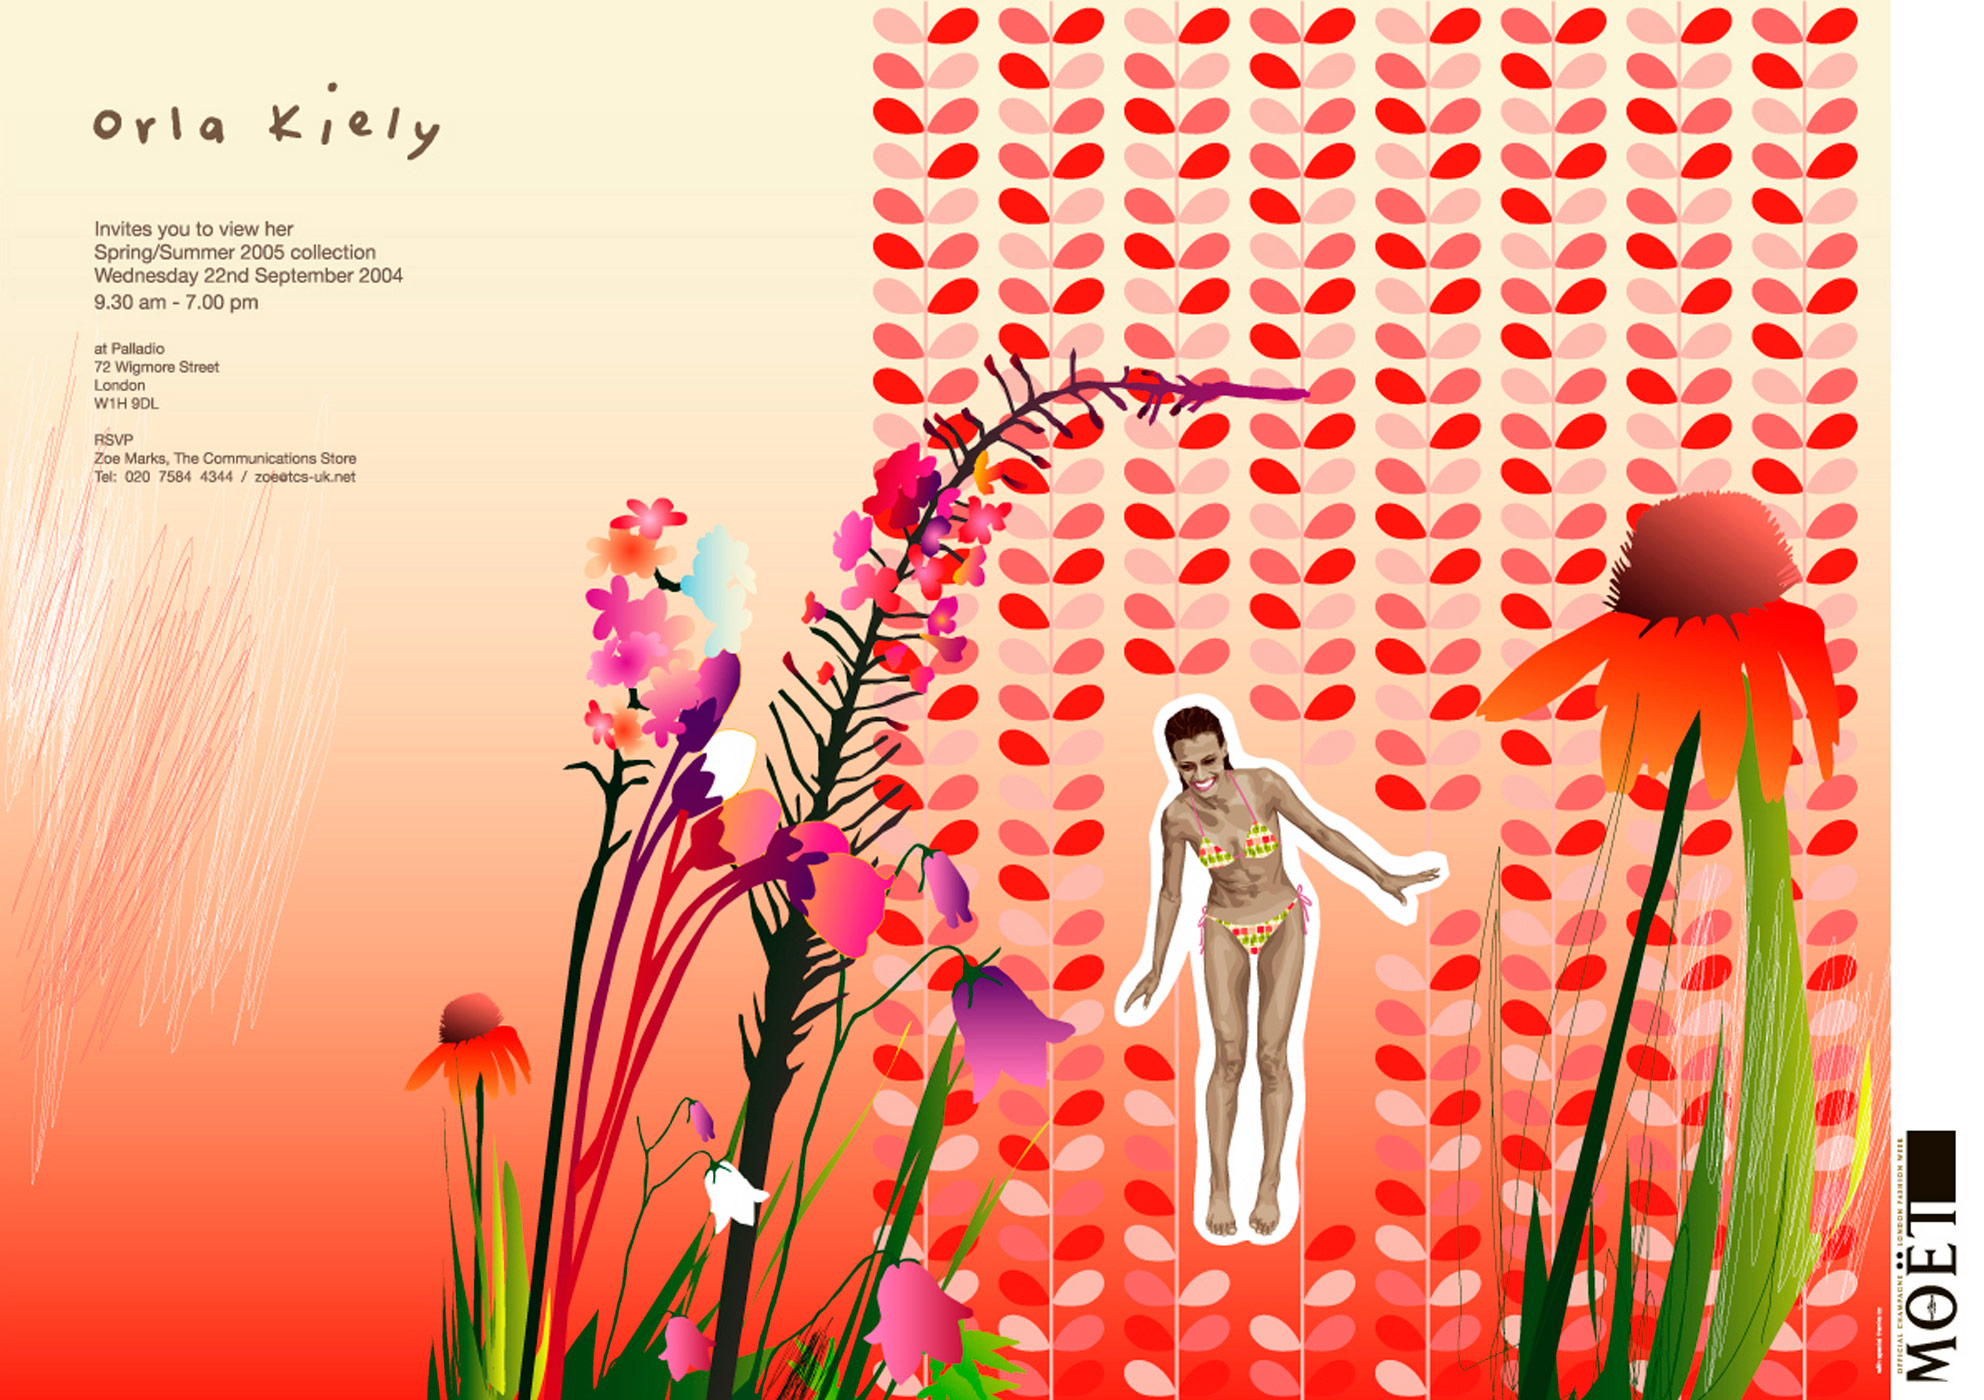 Orla Kiely, invitation, graphic design, illustration, branding